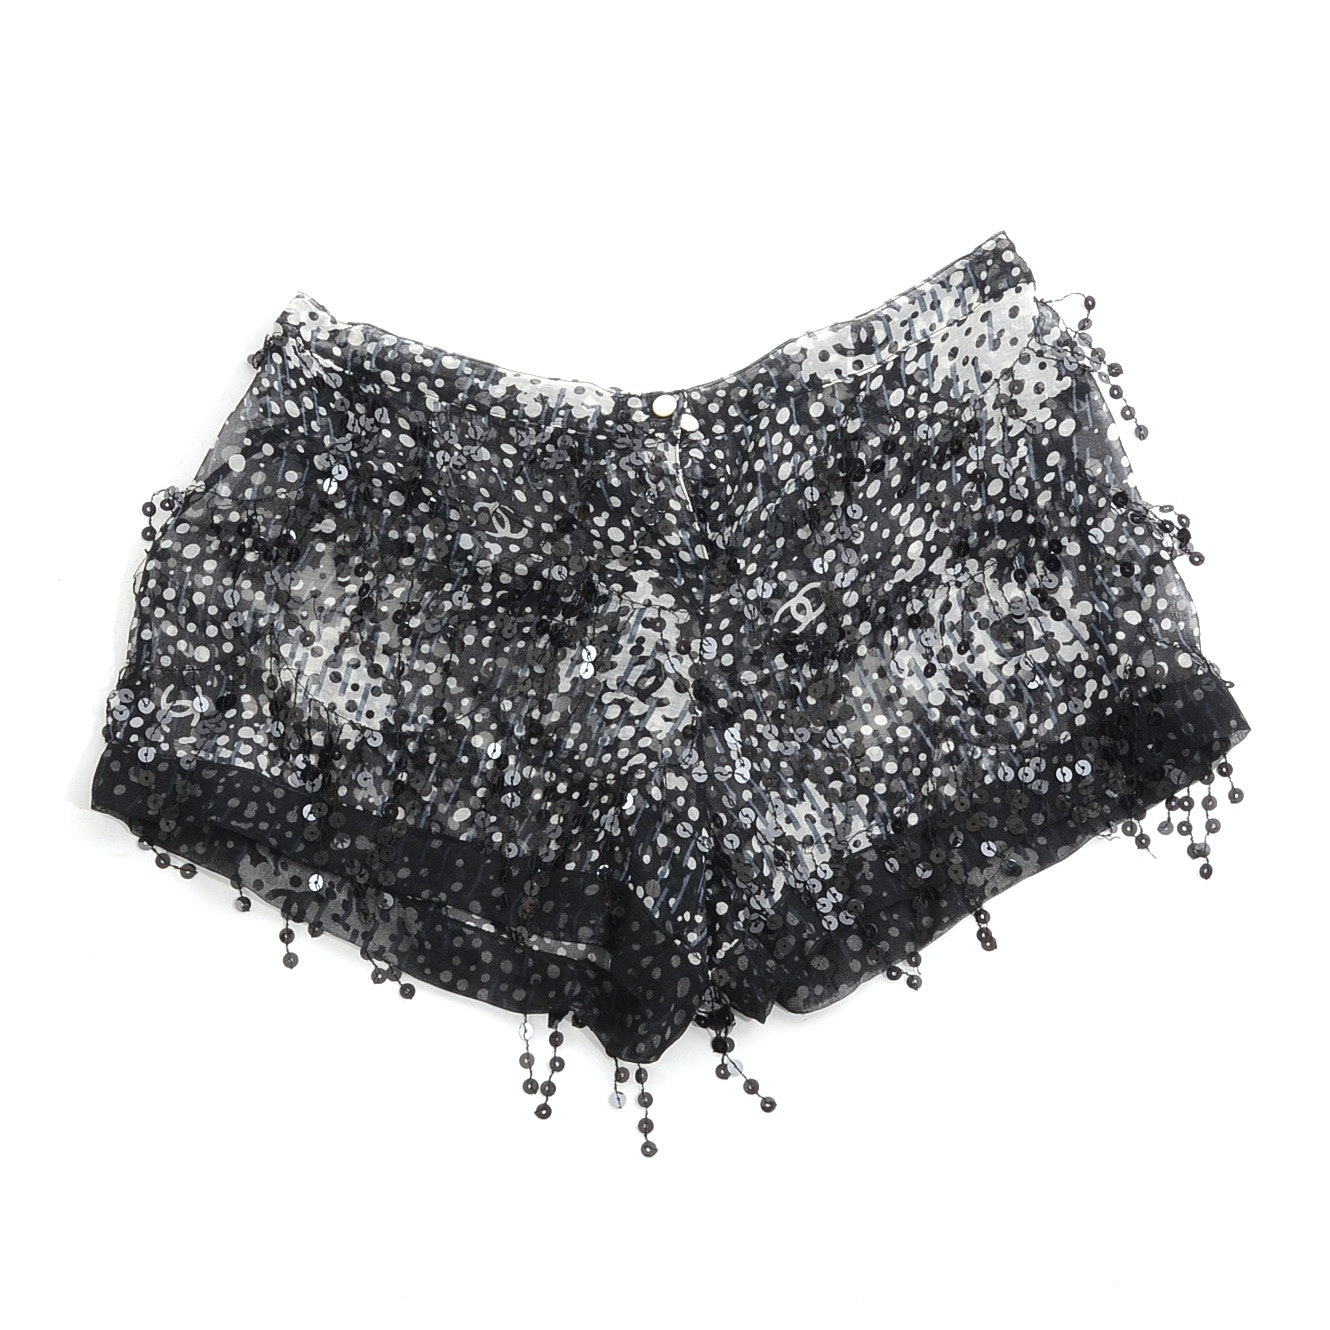 Chanel Boutique Silk Chiffon Mini Shorts with Black Sequined Fringe